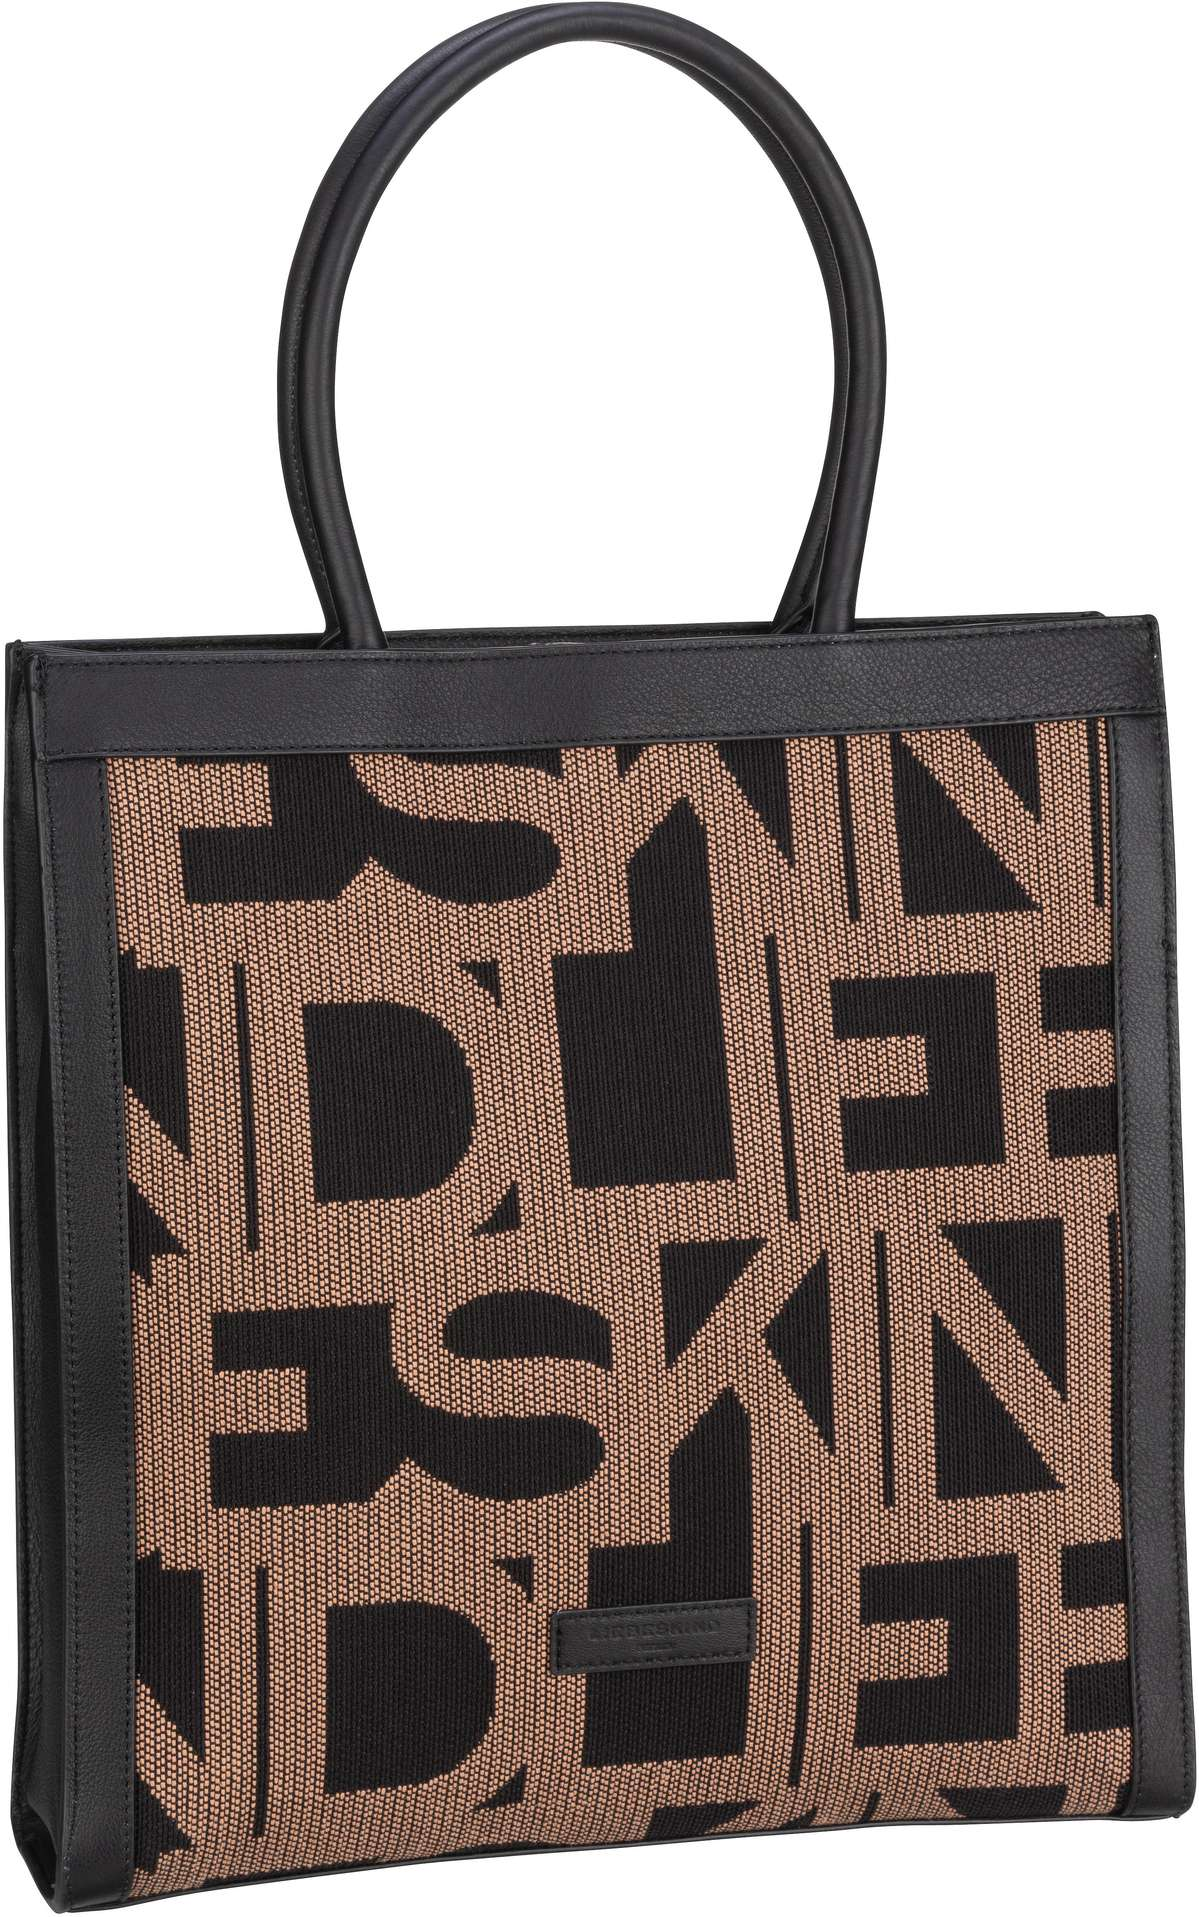 Berlin Shopper Neem Tote L Black